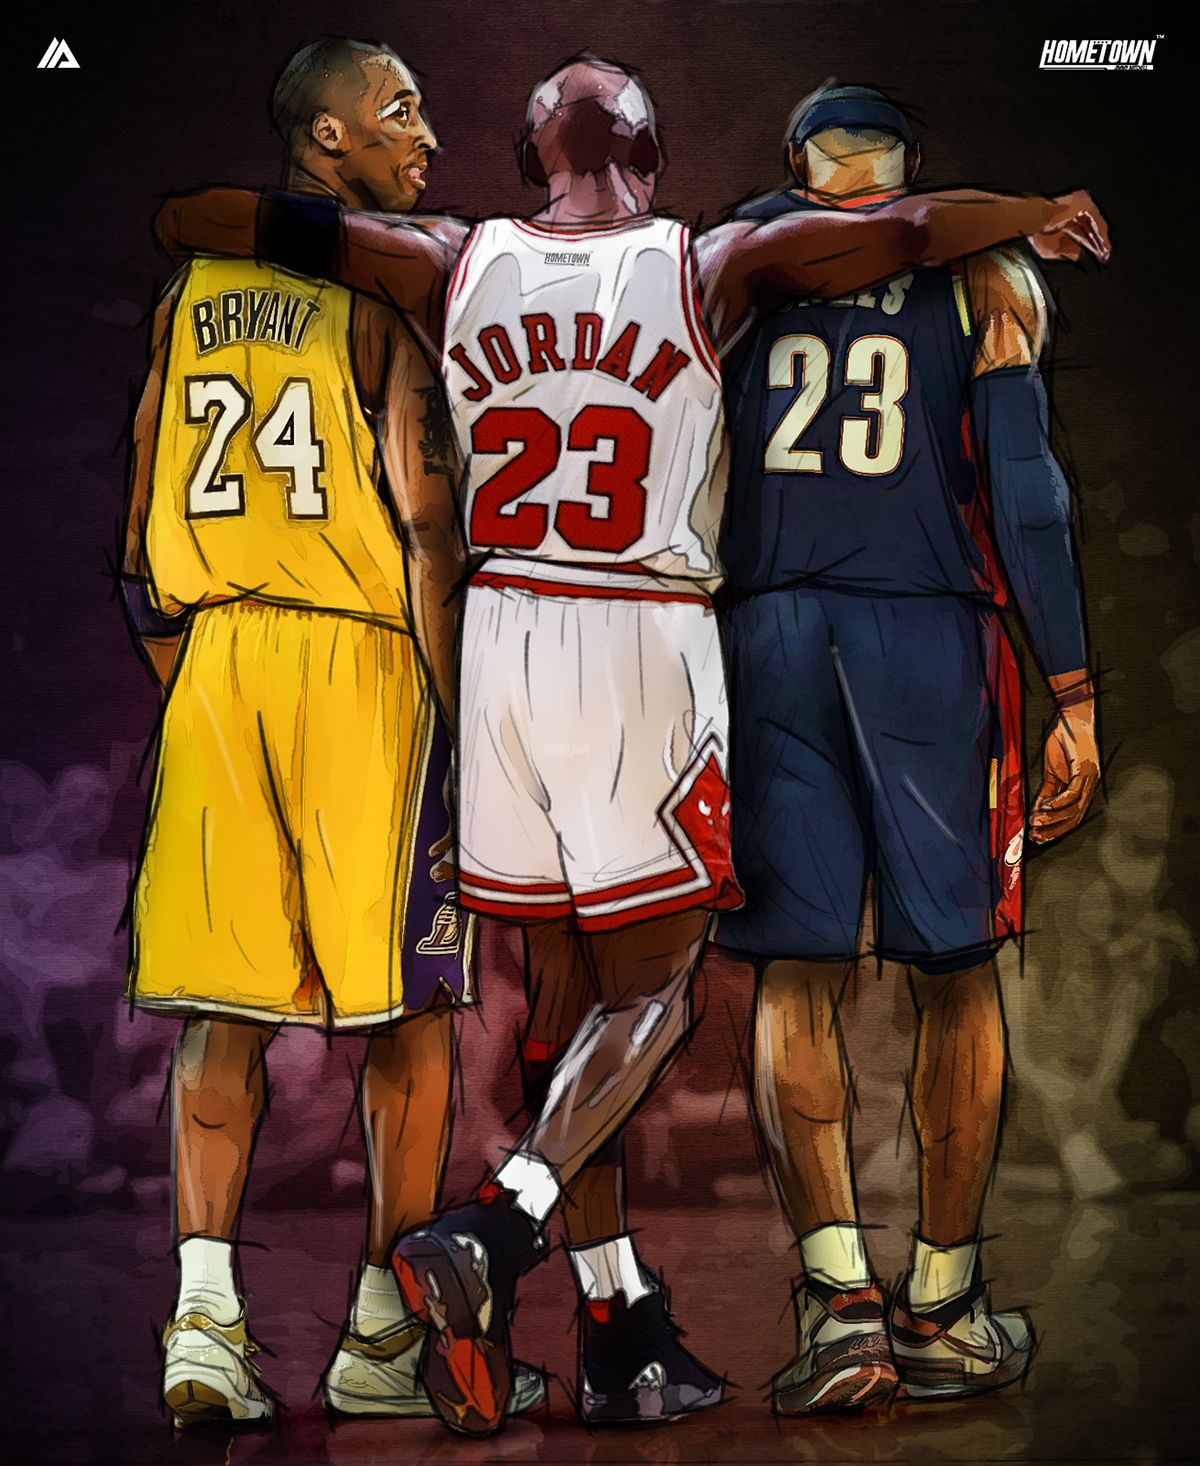 Legends by JIMMY MITCHELL